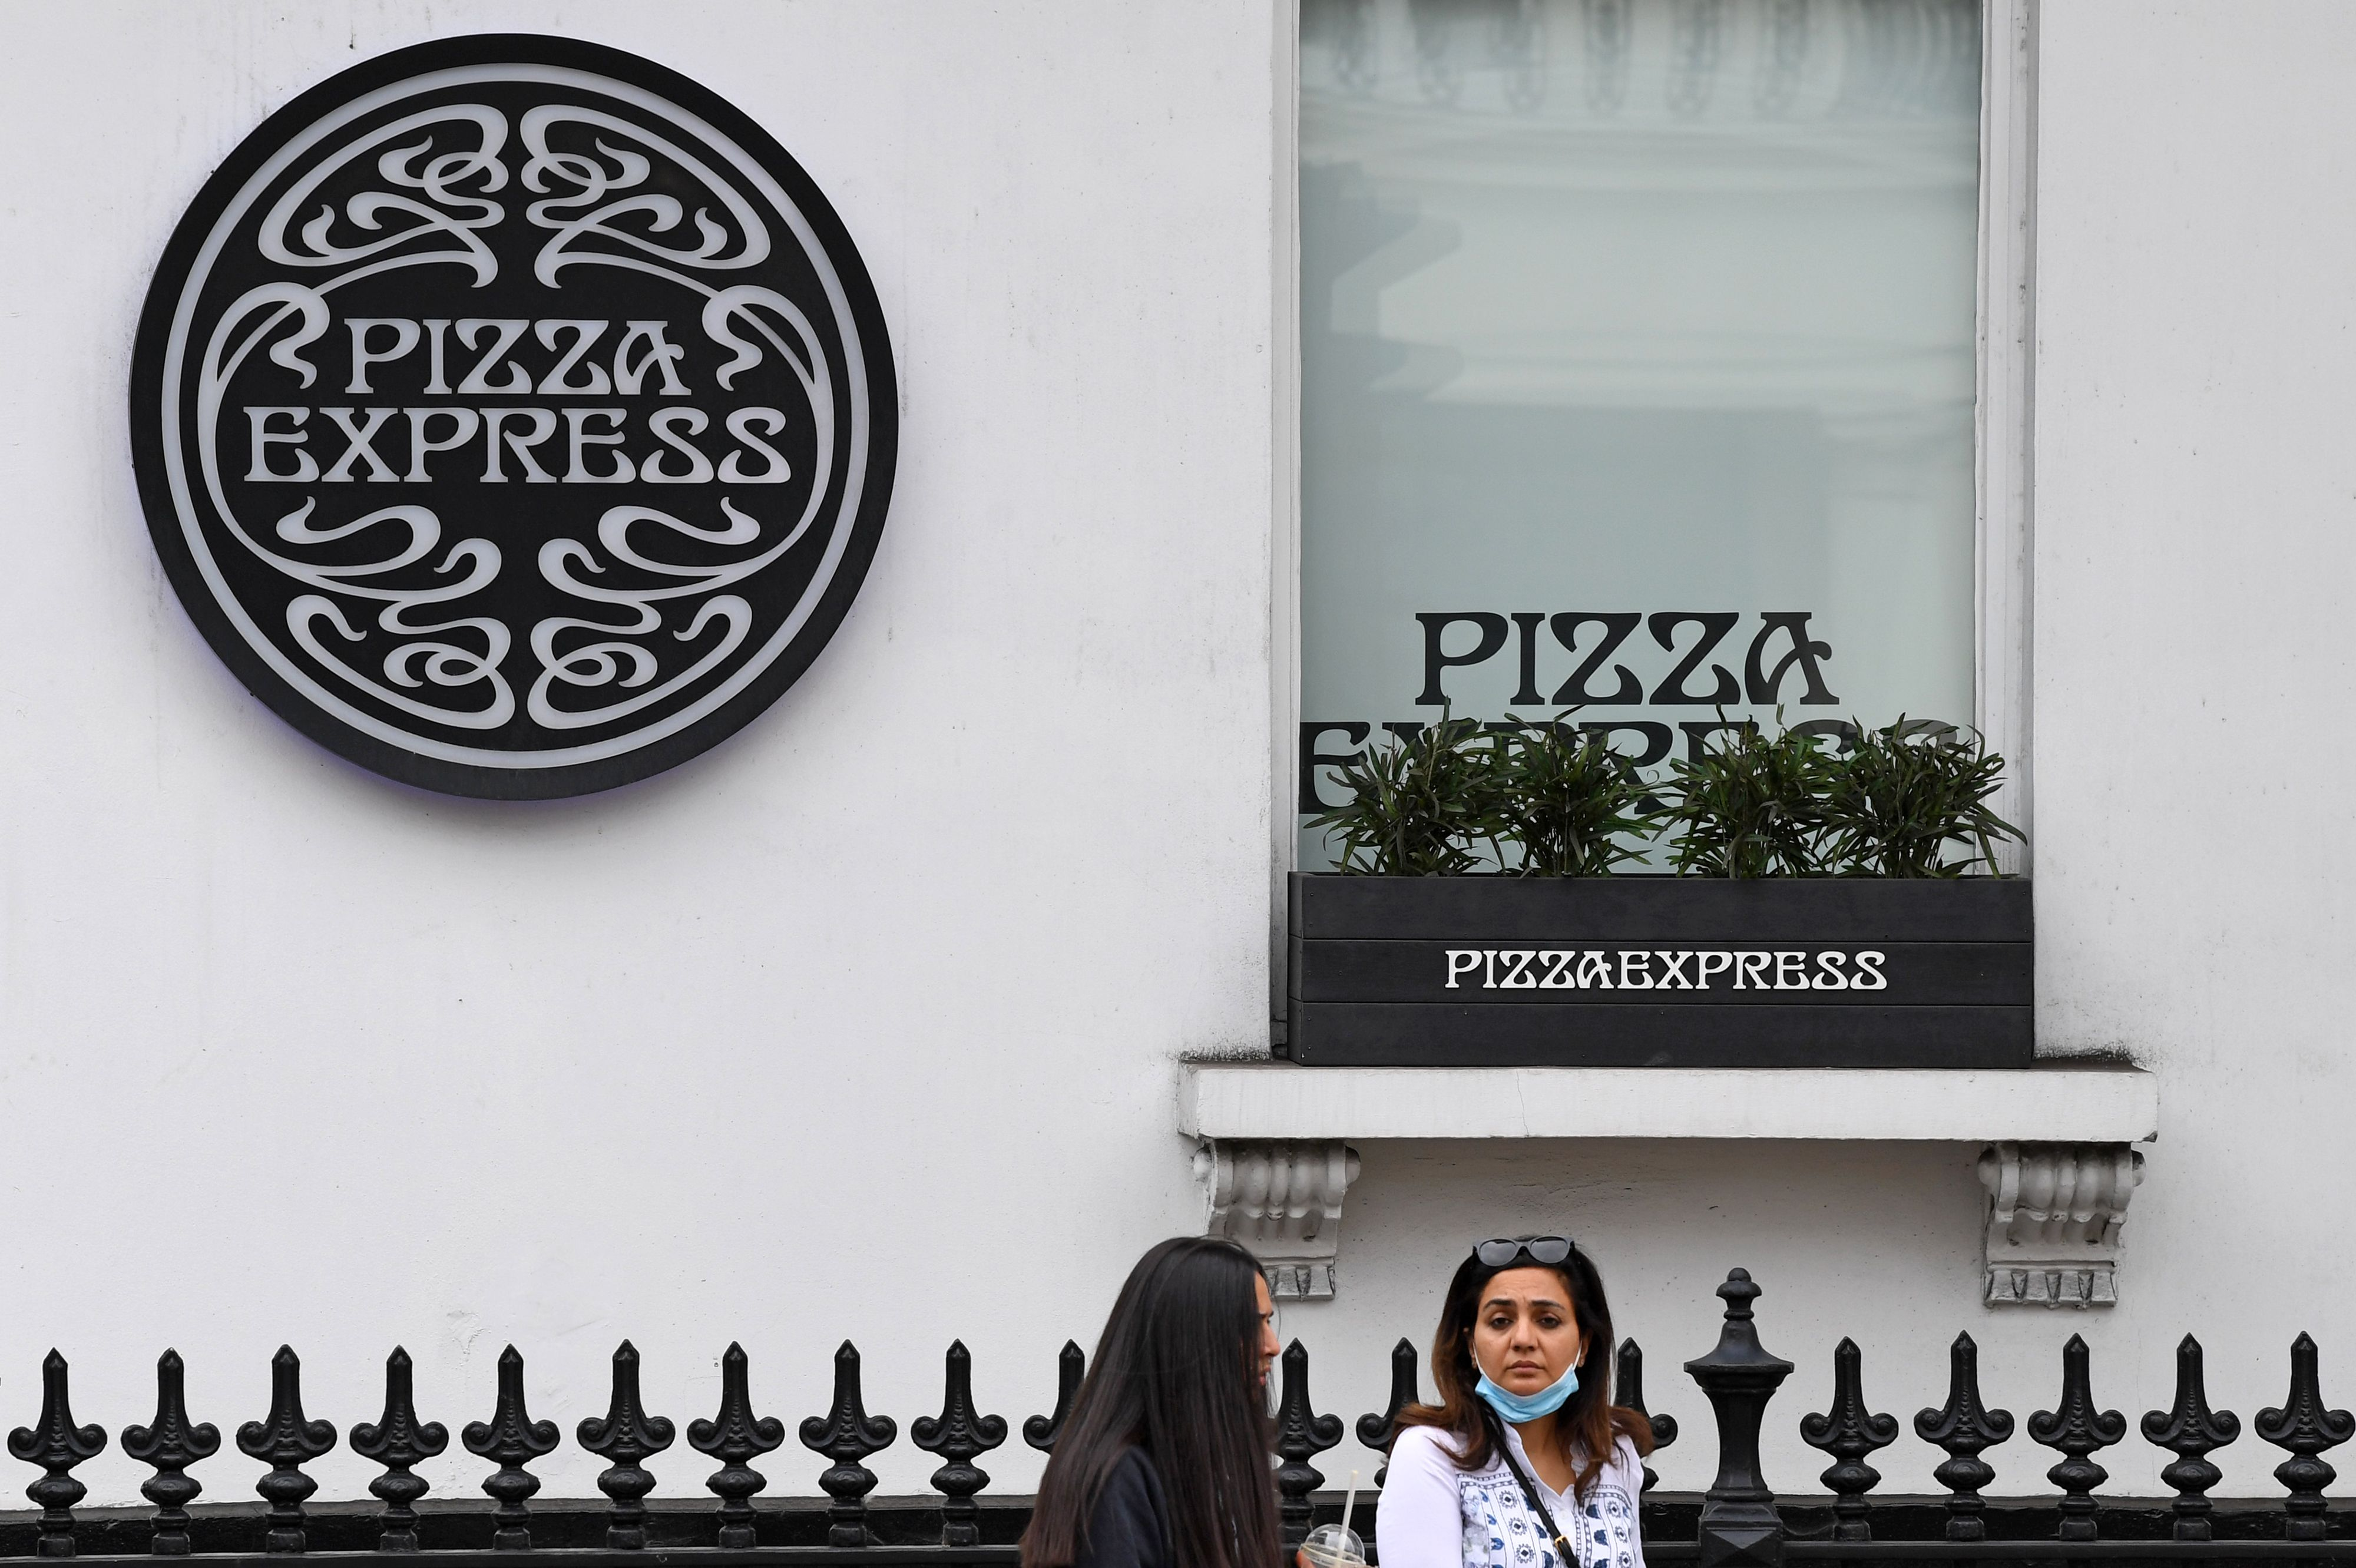 Pizza Express logo on the side of a Pizza Express restaurant in London